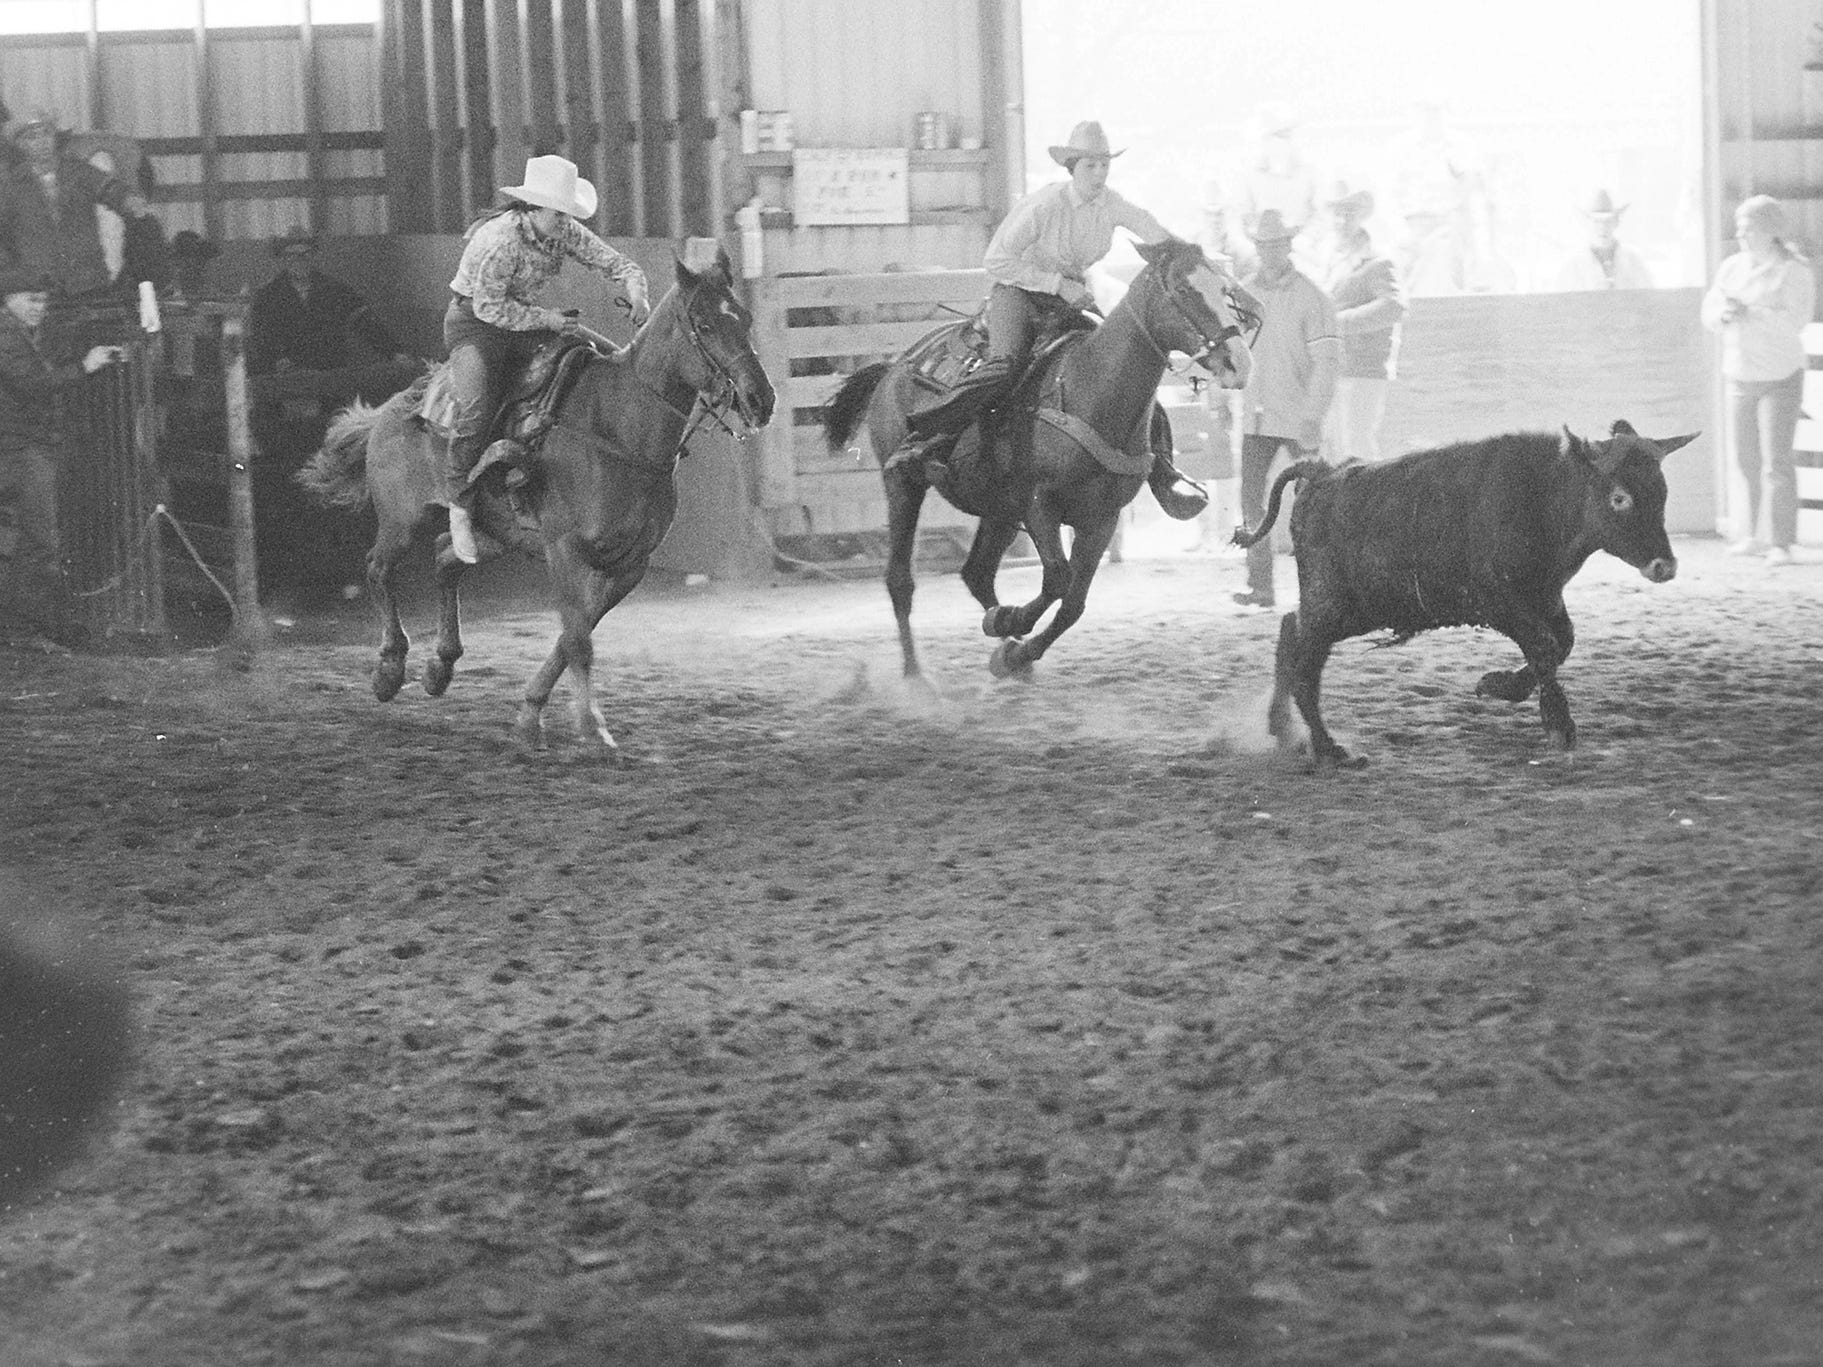 04/06/70